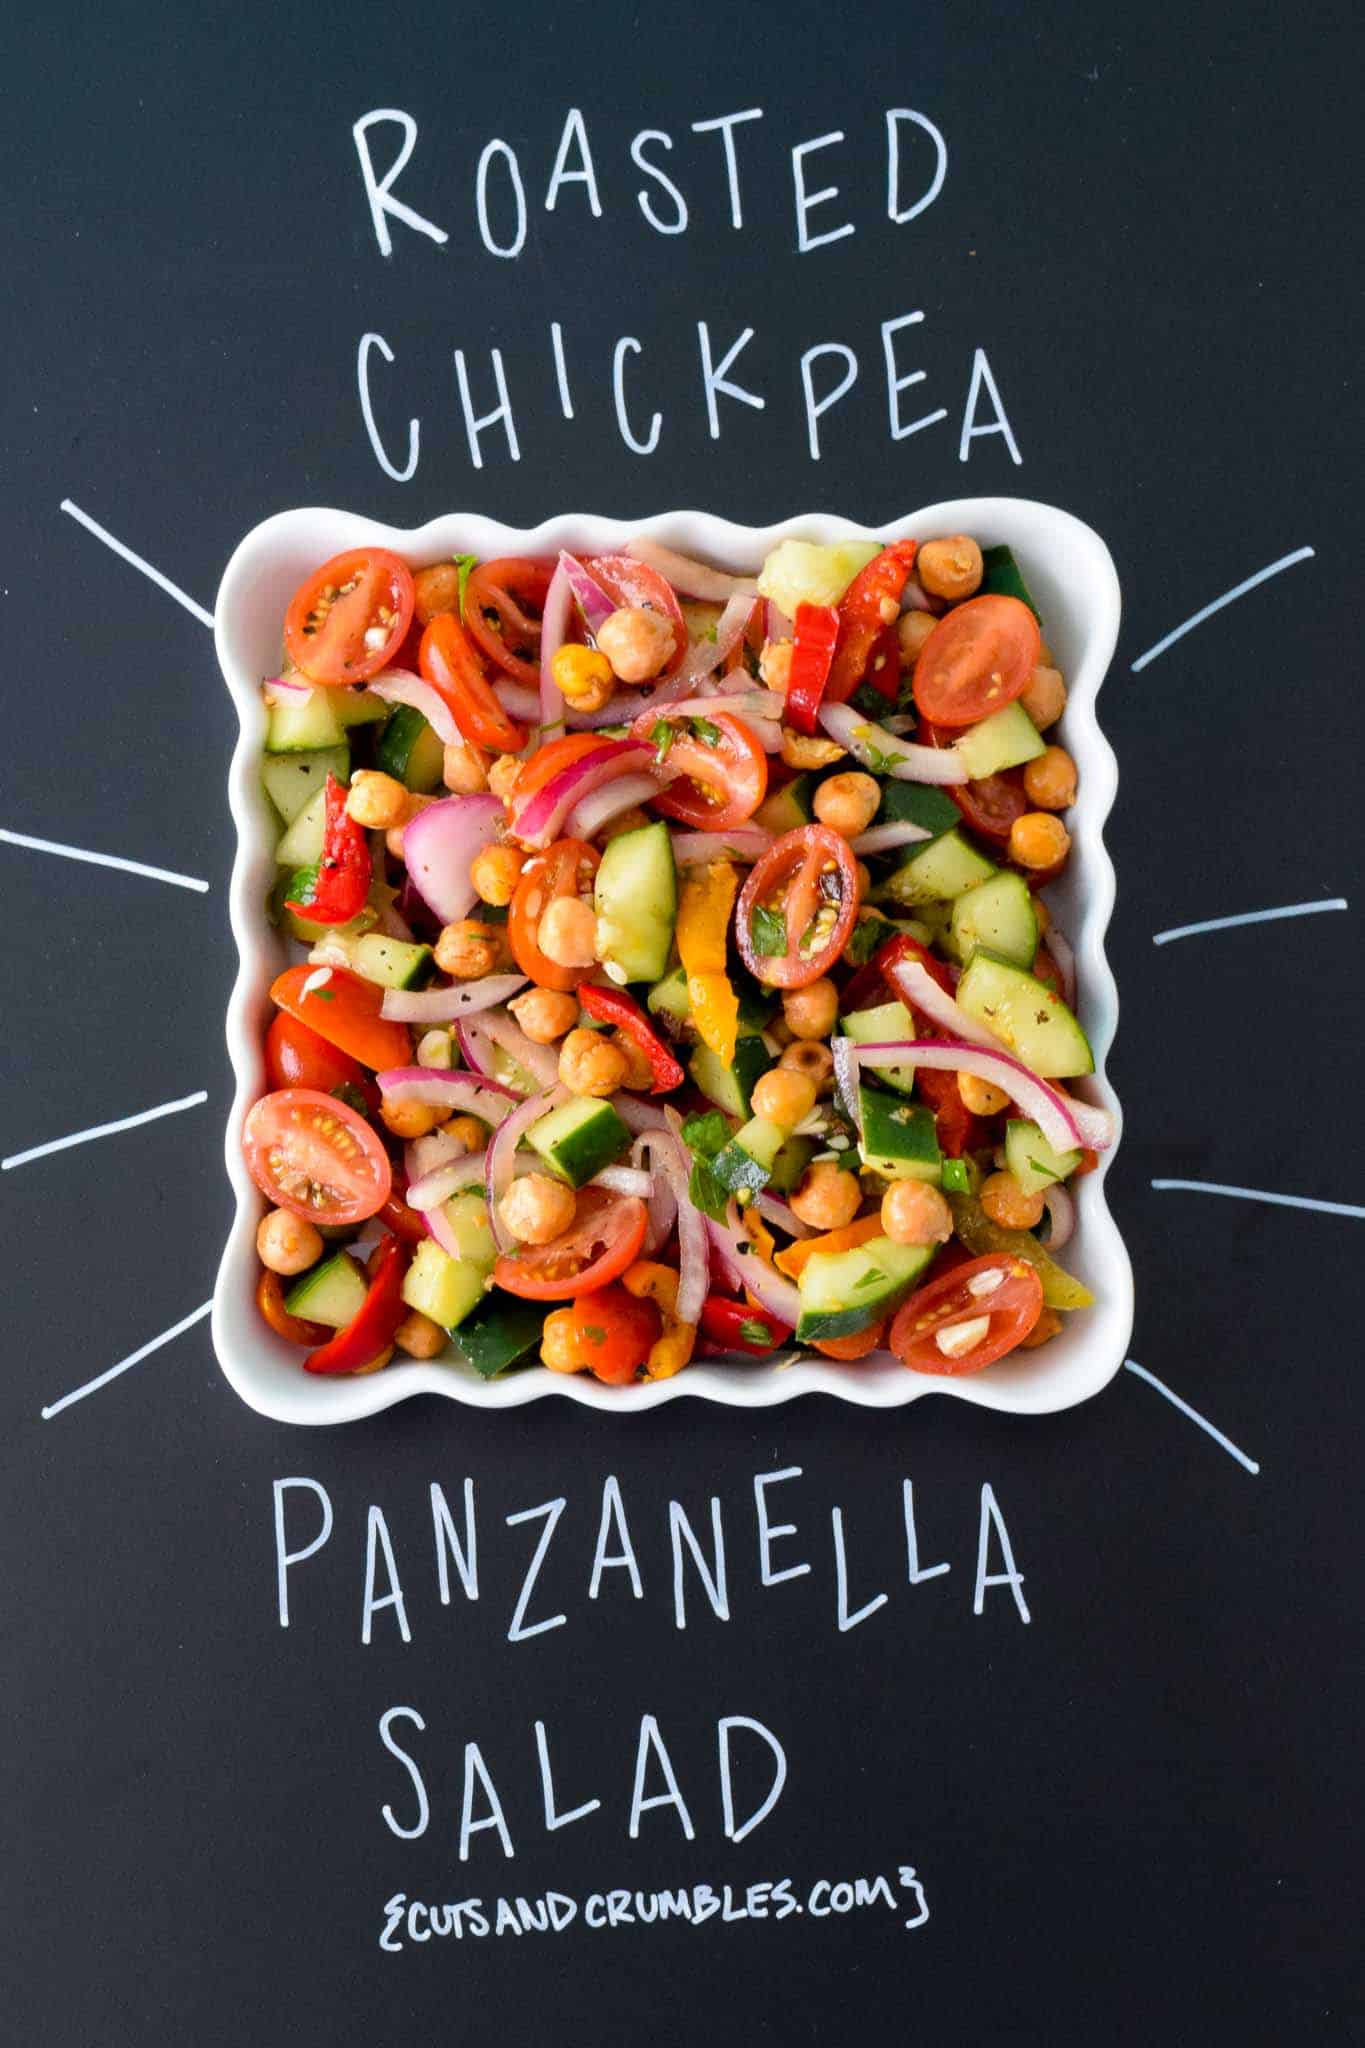 Roasted Chickpea Panzanella Salad